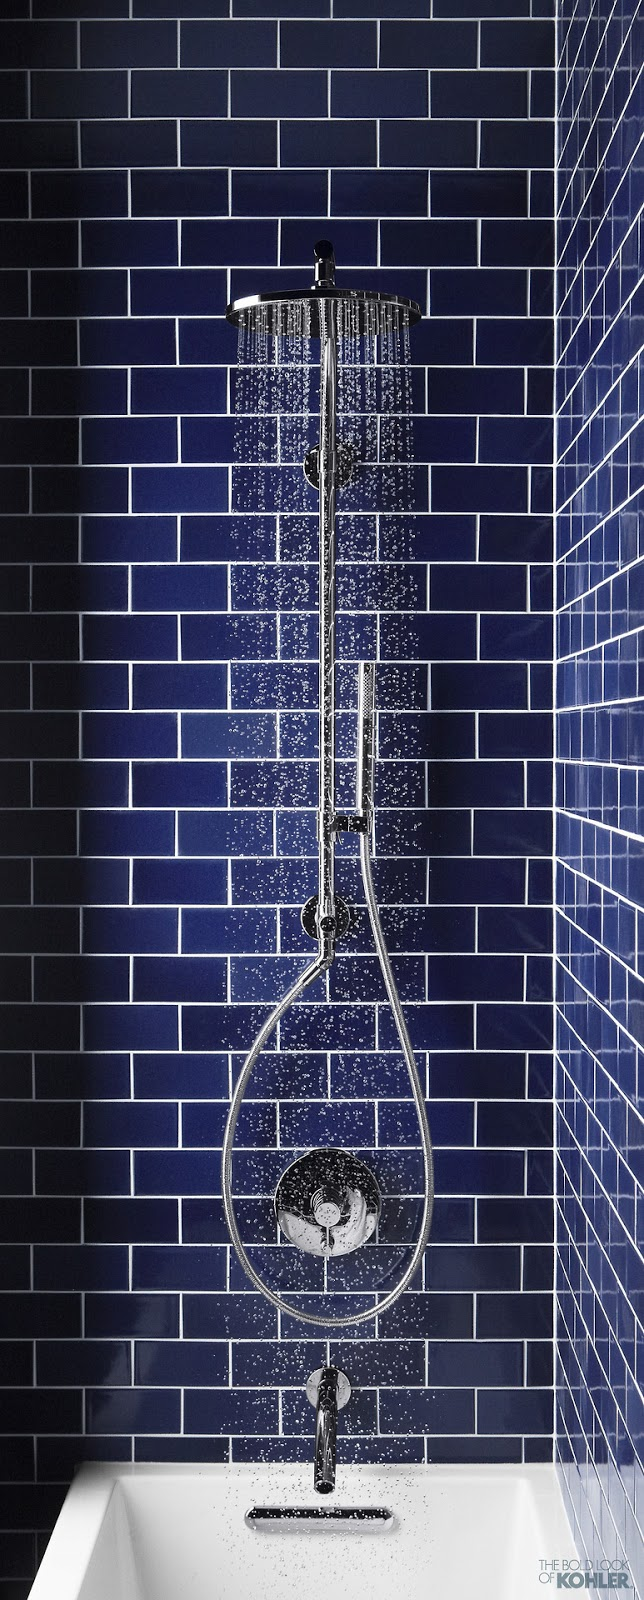 kohler shower at mira showers